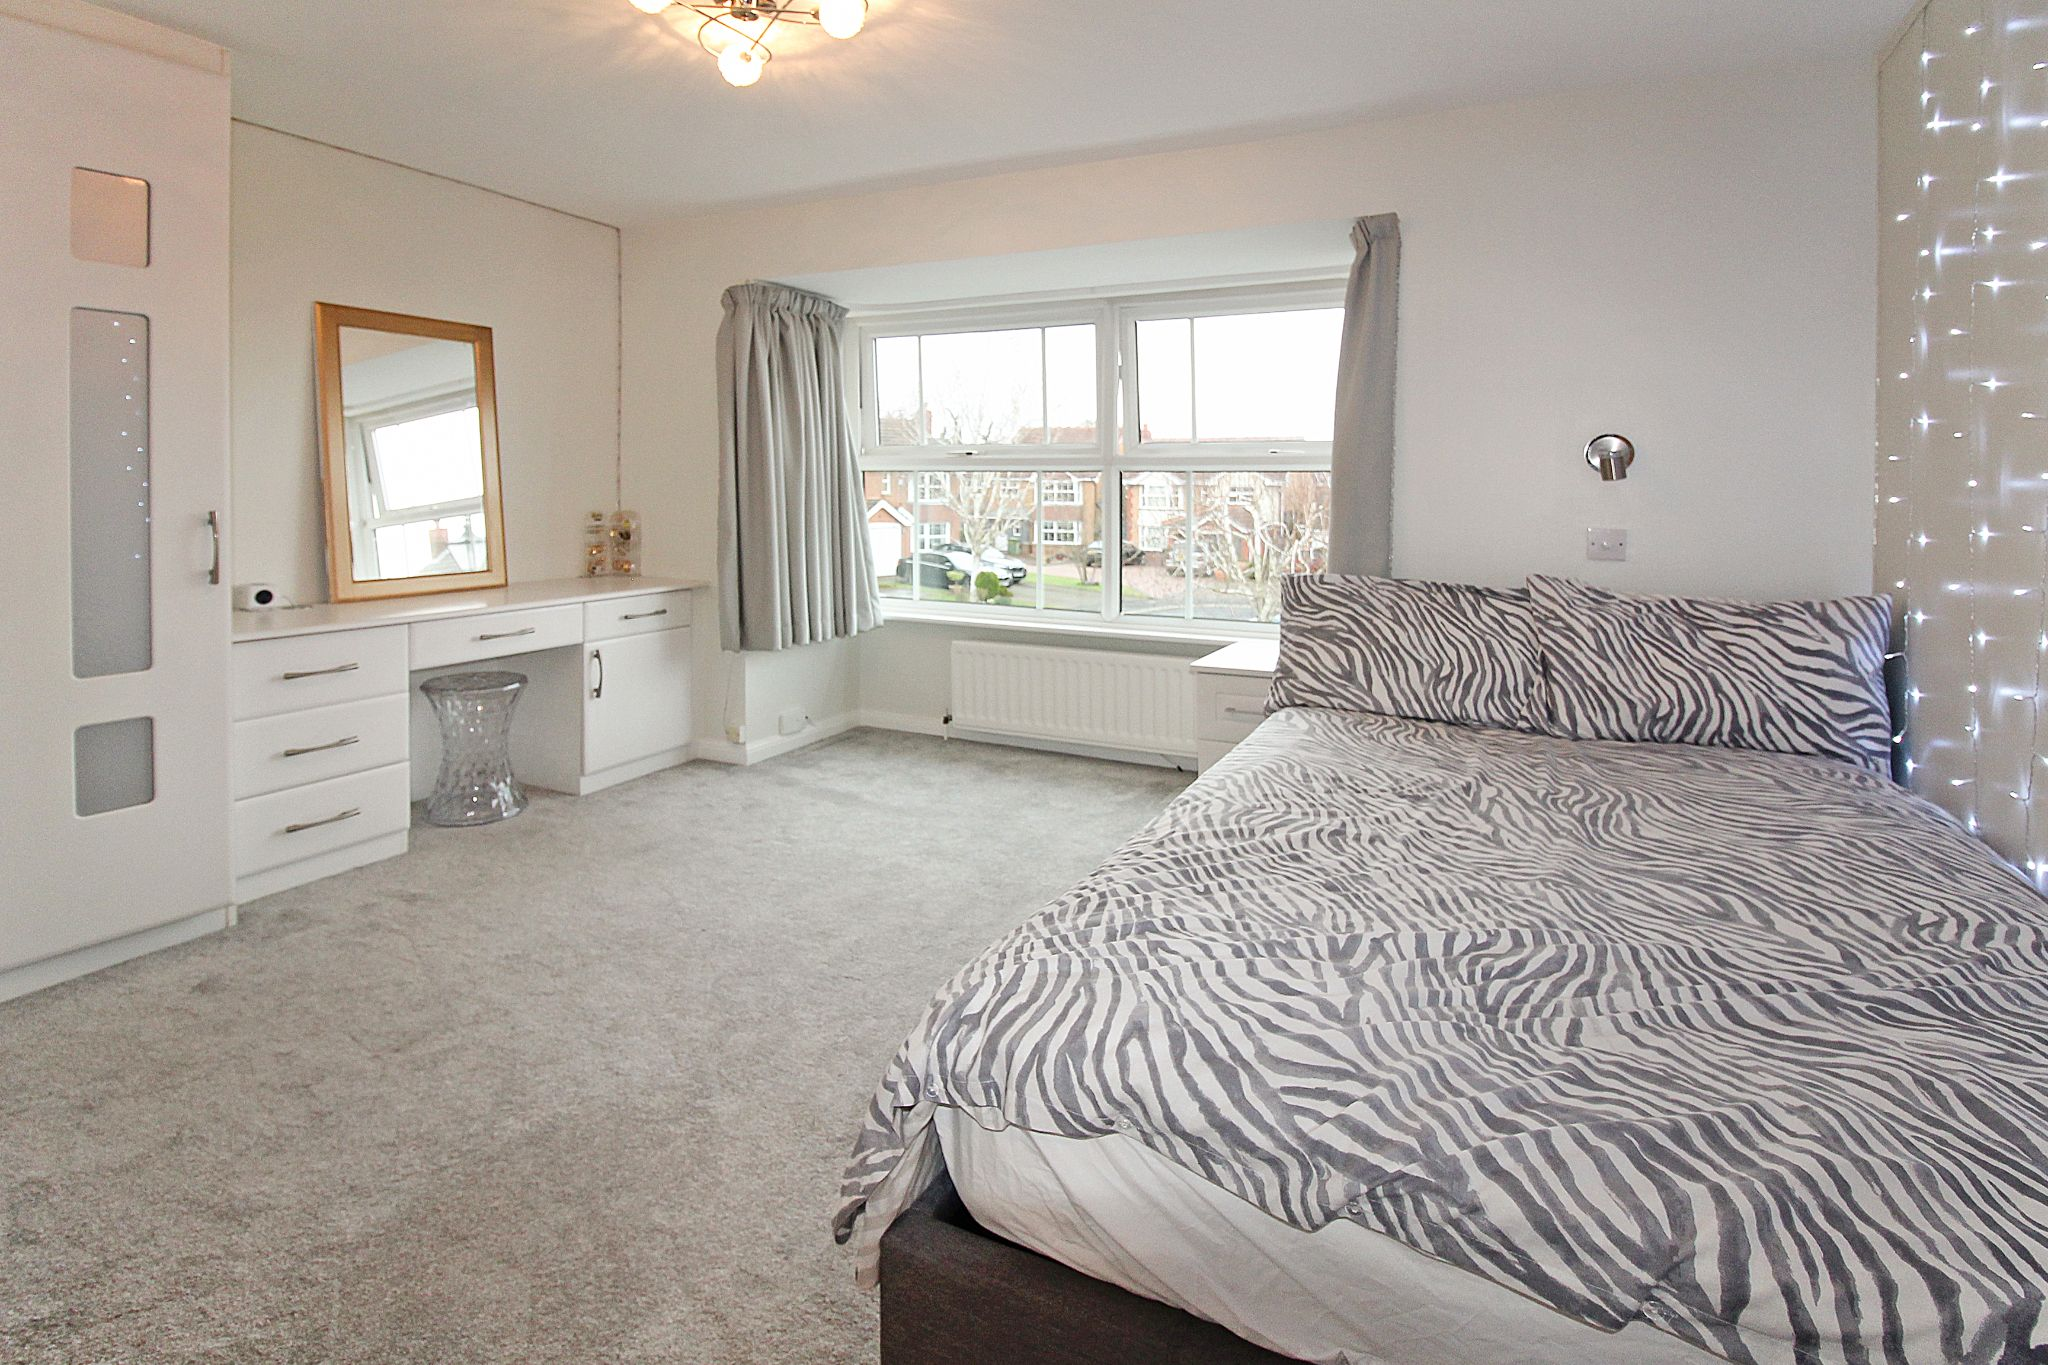 5 bedroom detached house SSTC in Solihull - Photograph 14.